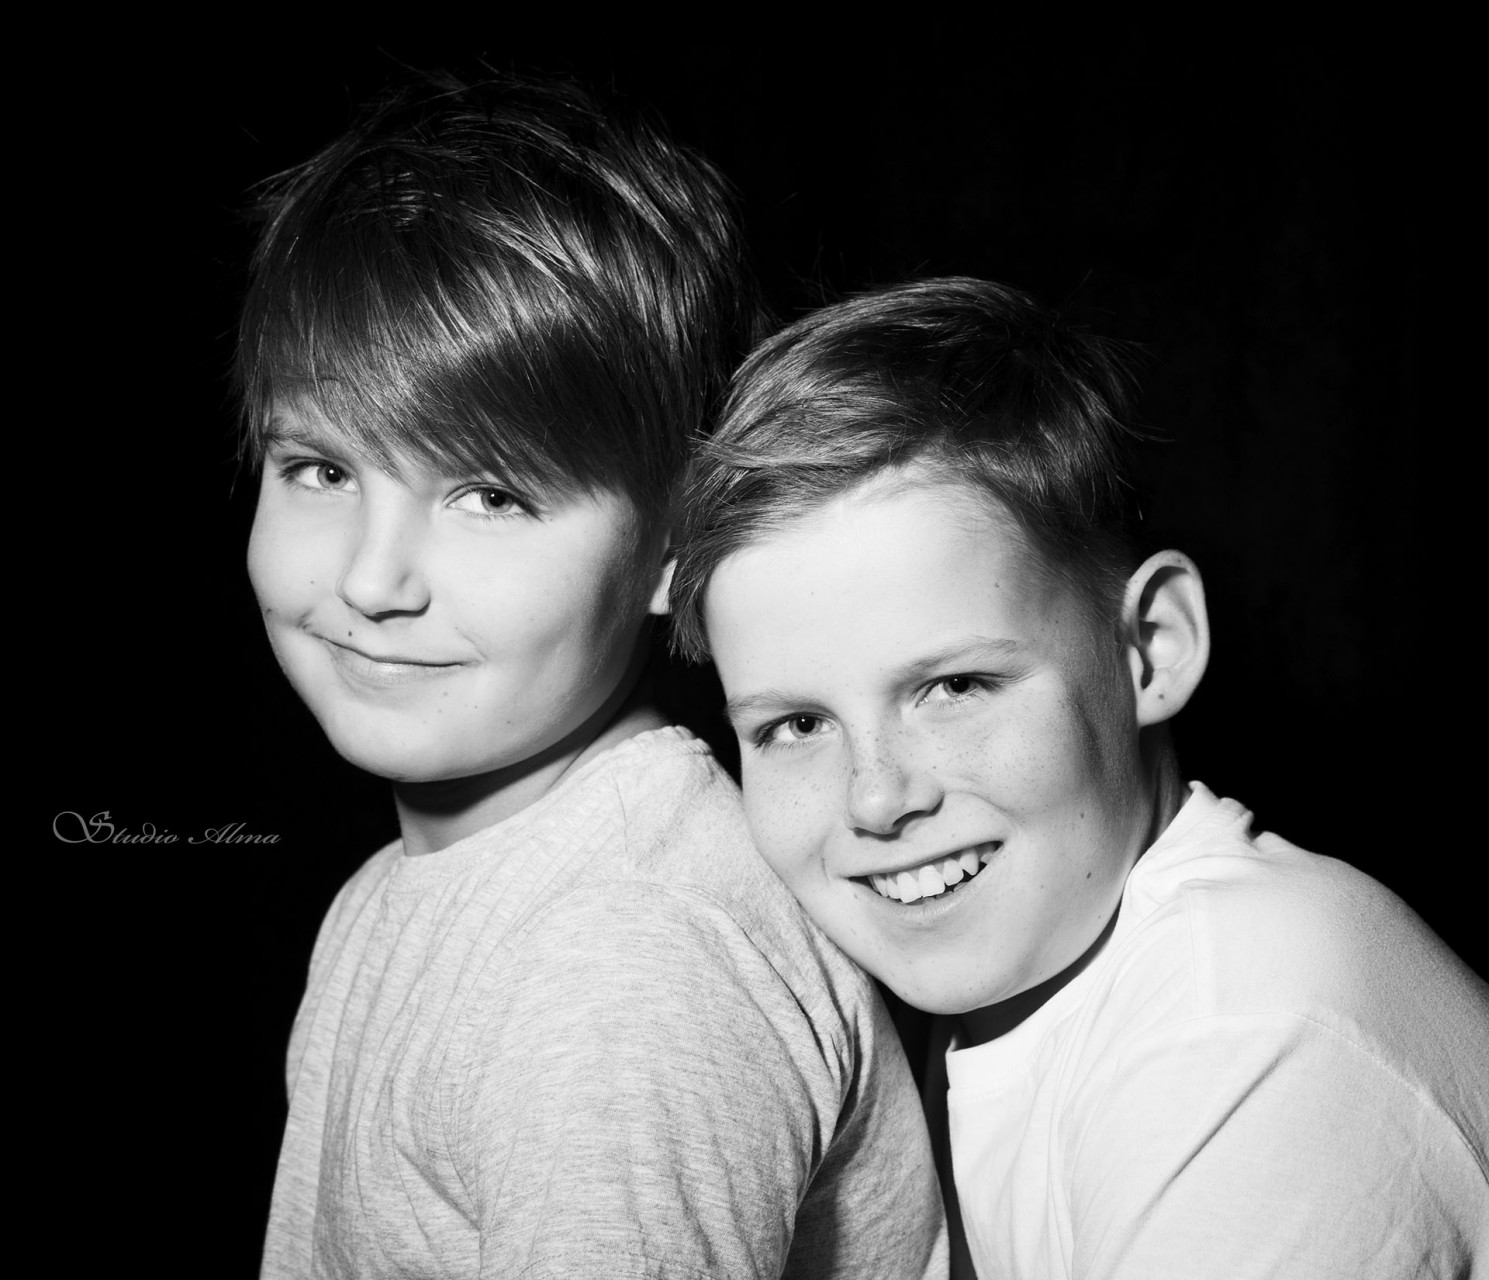 twins-brothers-studioalma